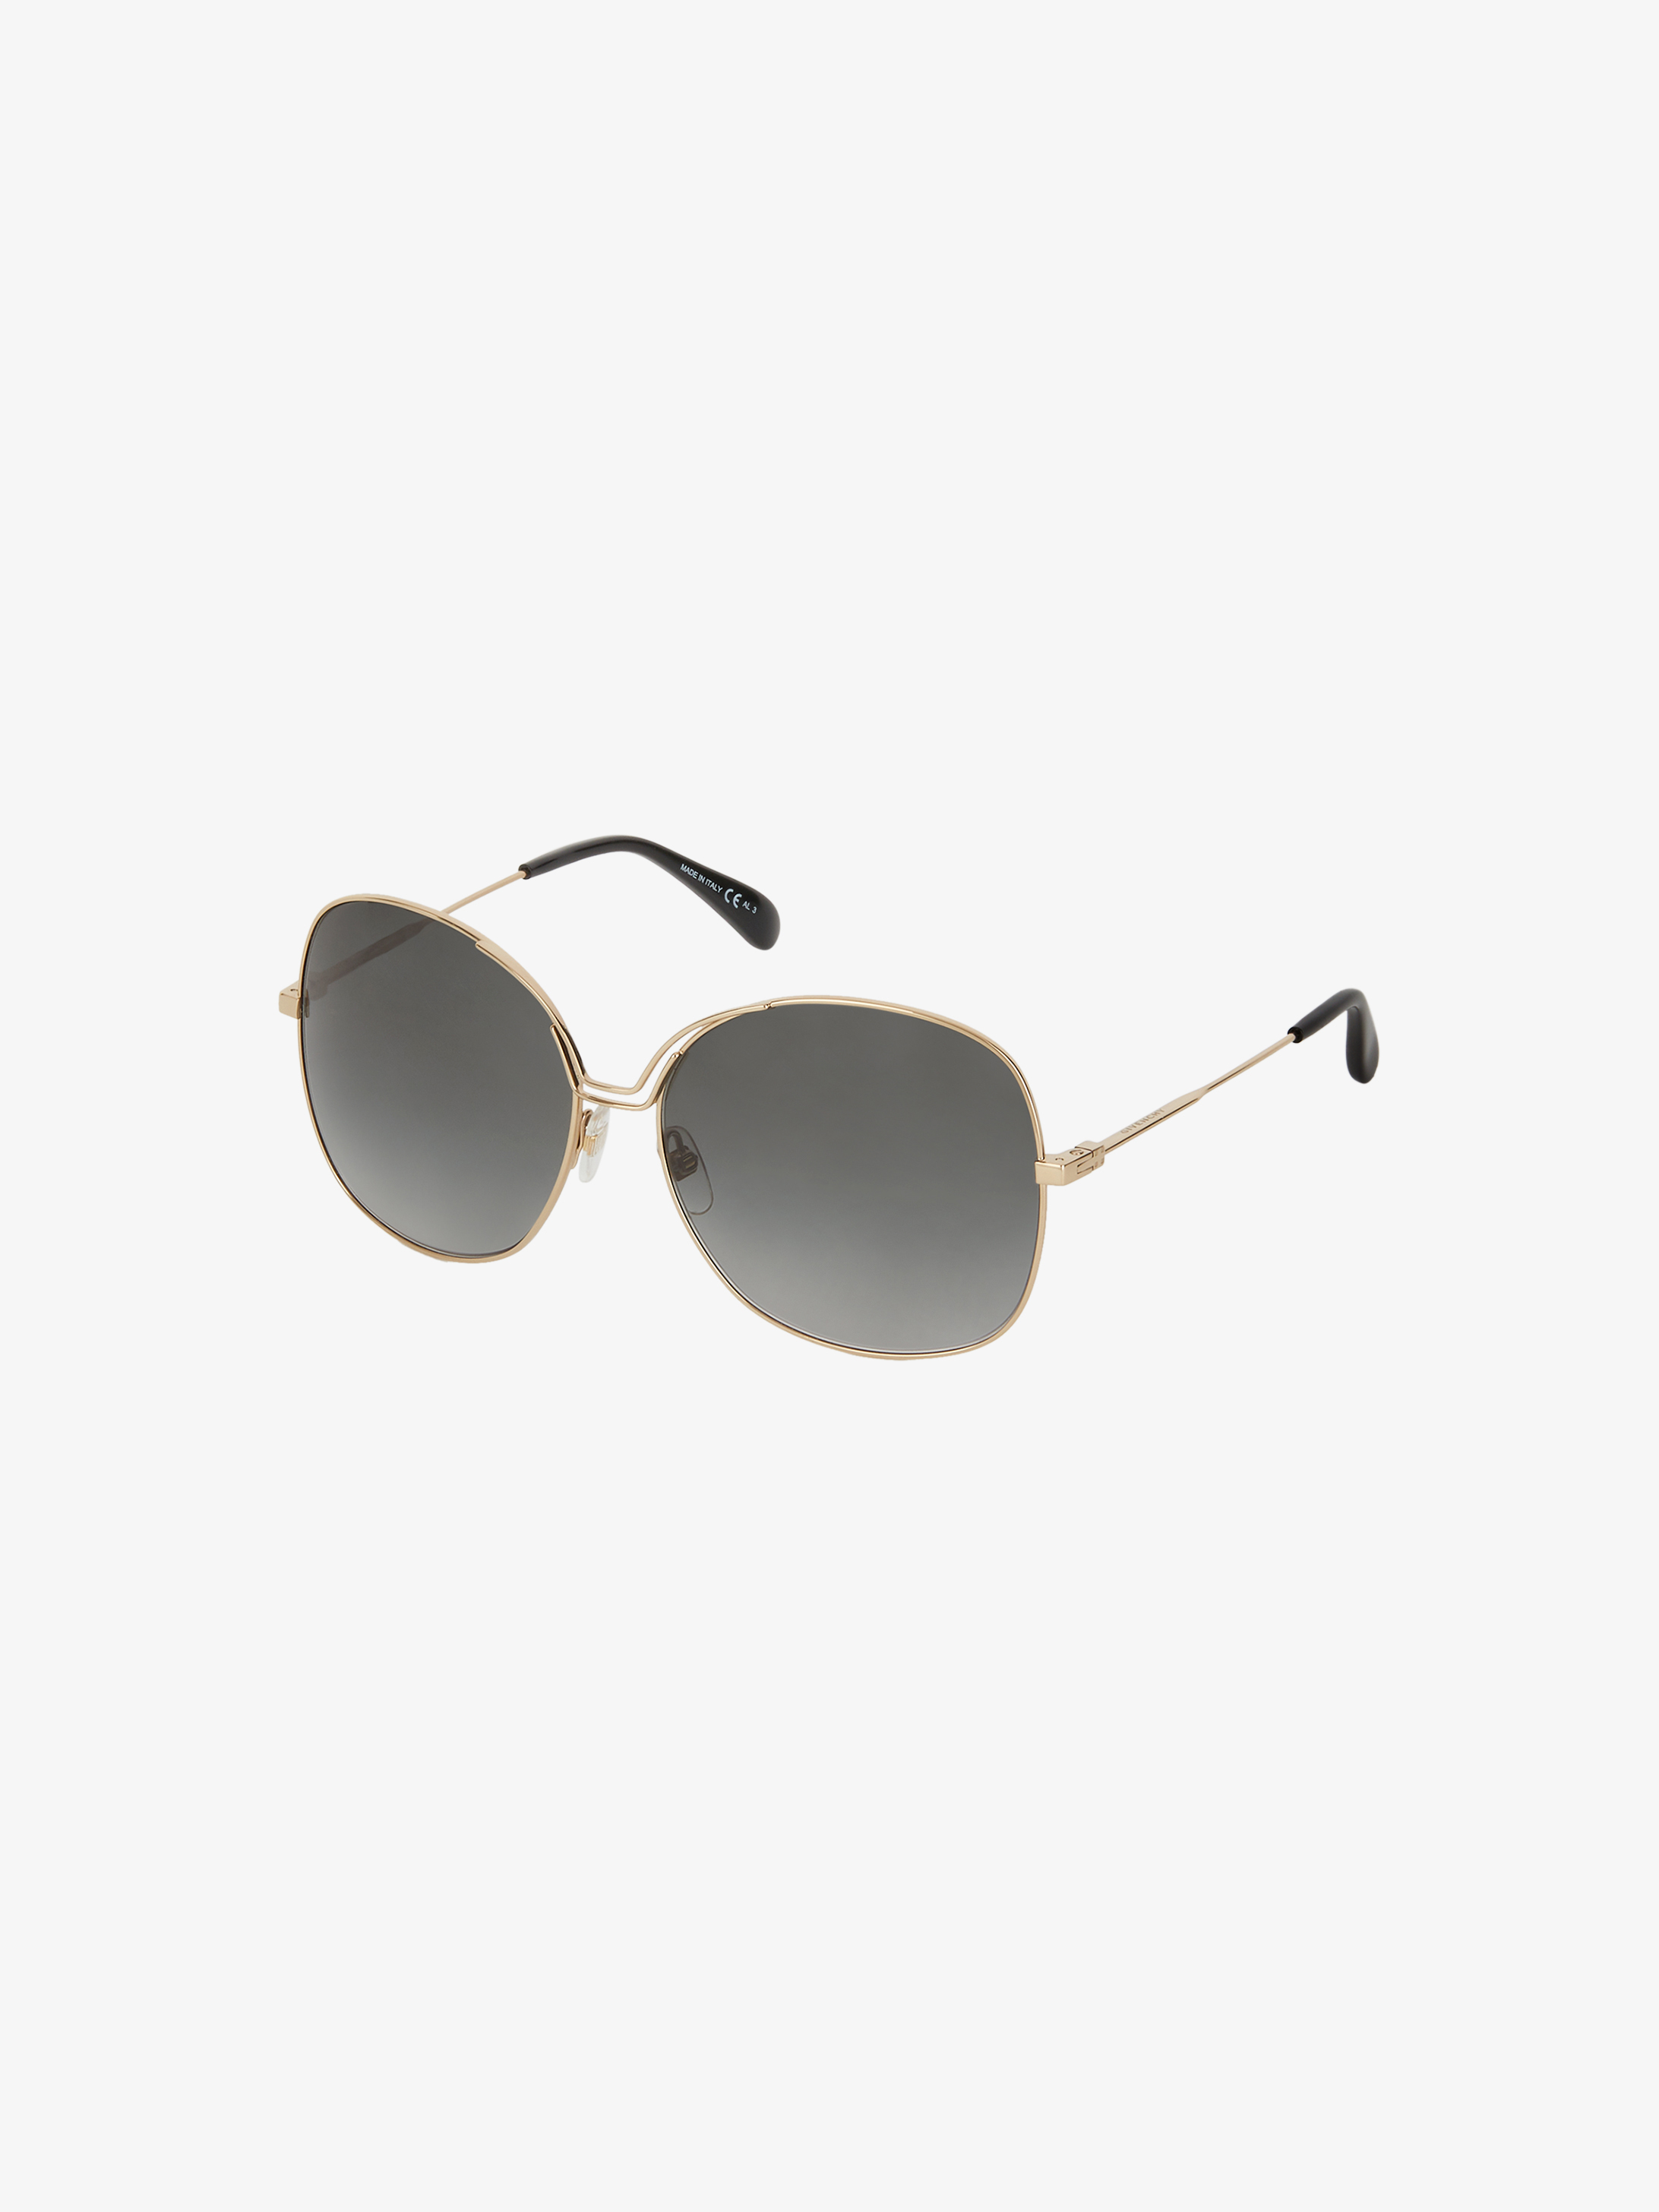 Two tone GV Bow sunglasses in metal